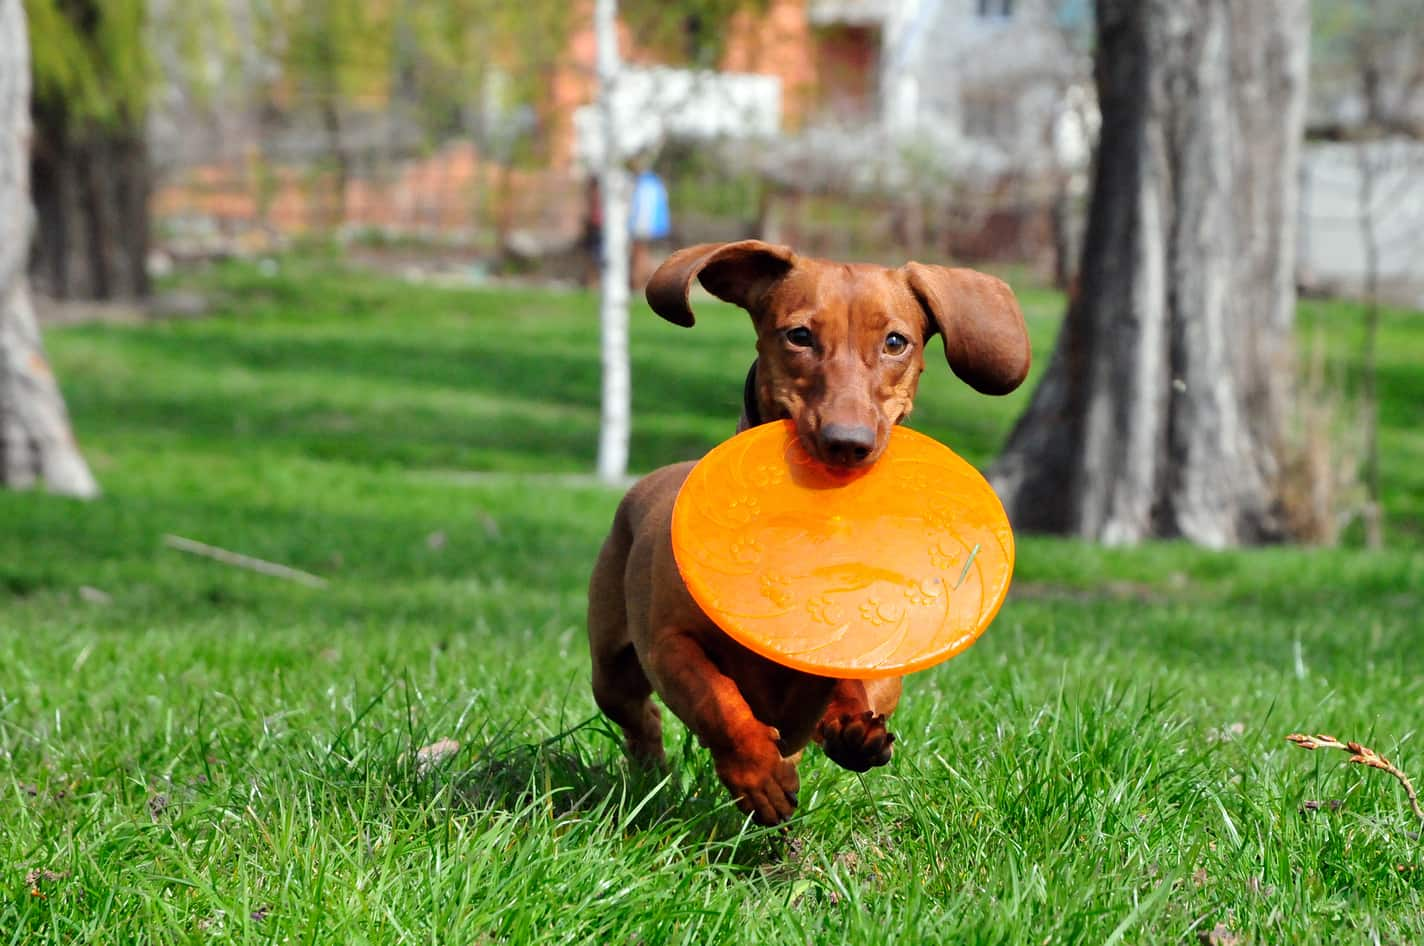 Brown dachshund with orange flying disc in mouth, running in park.